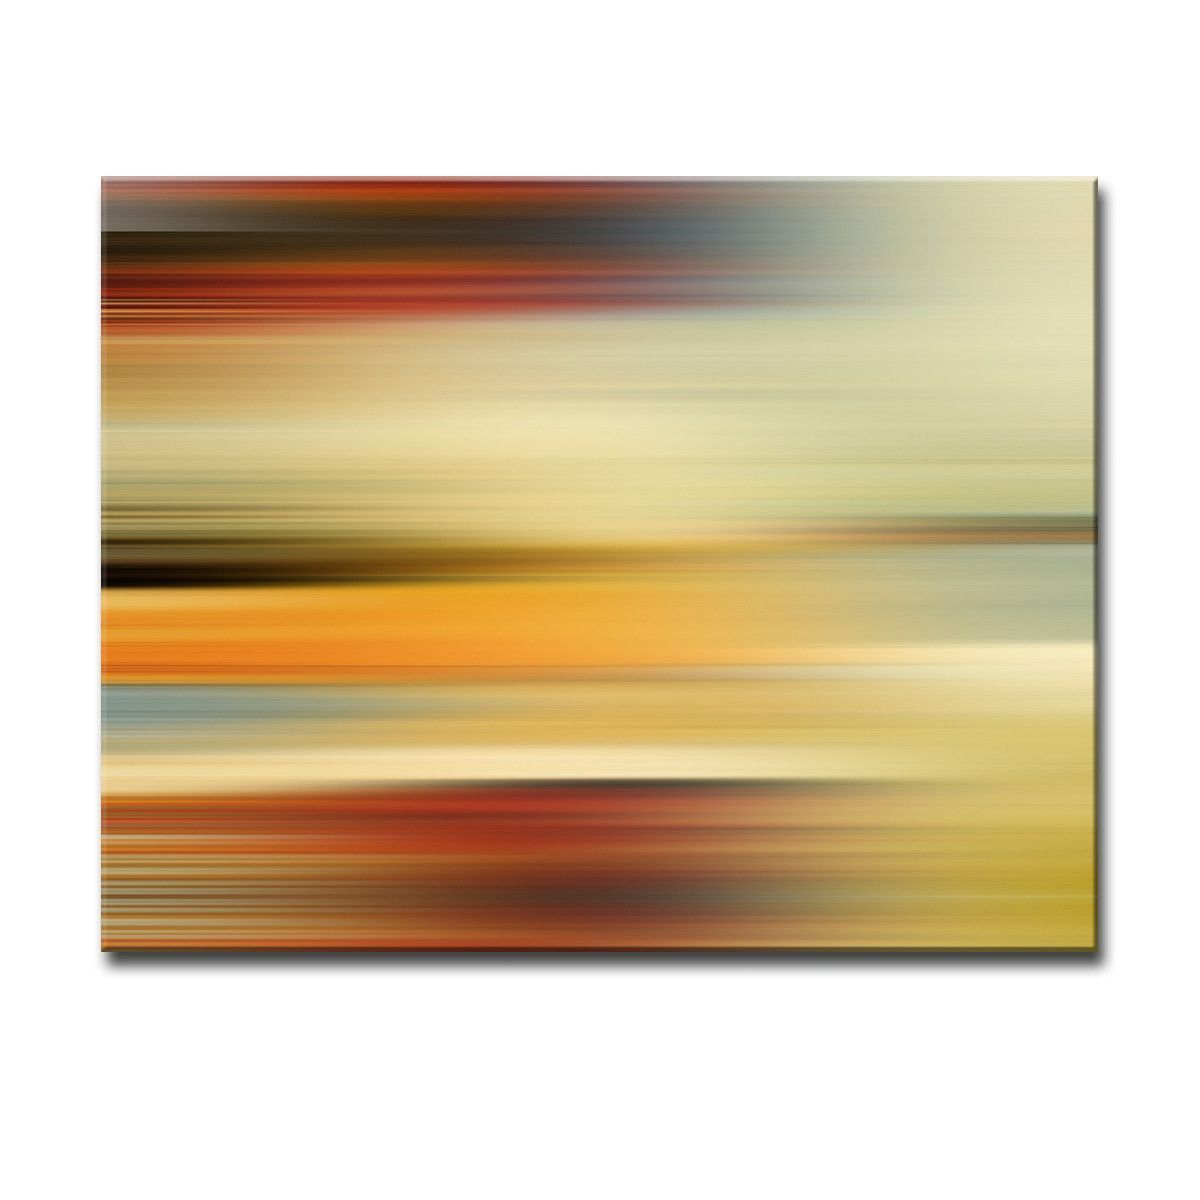 Blur Stripes L\' Wall Art on Canvas | Canvases, Graphic art and Products